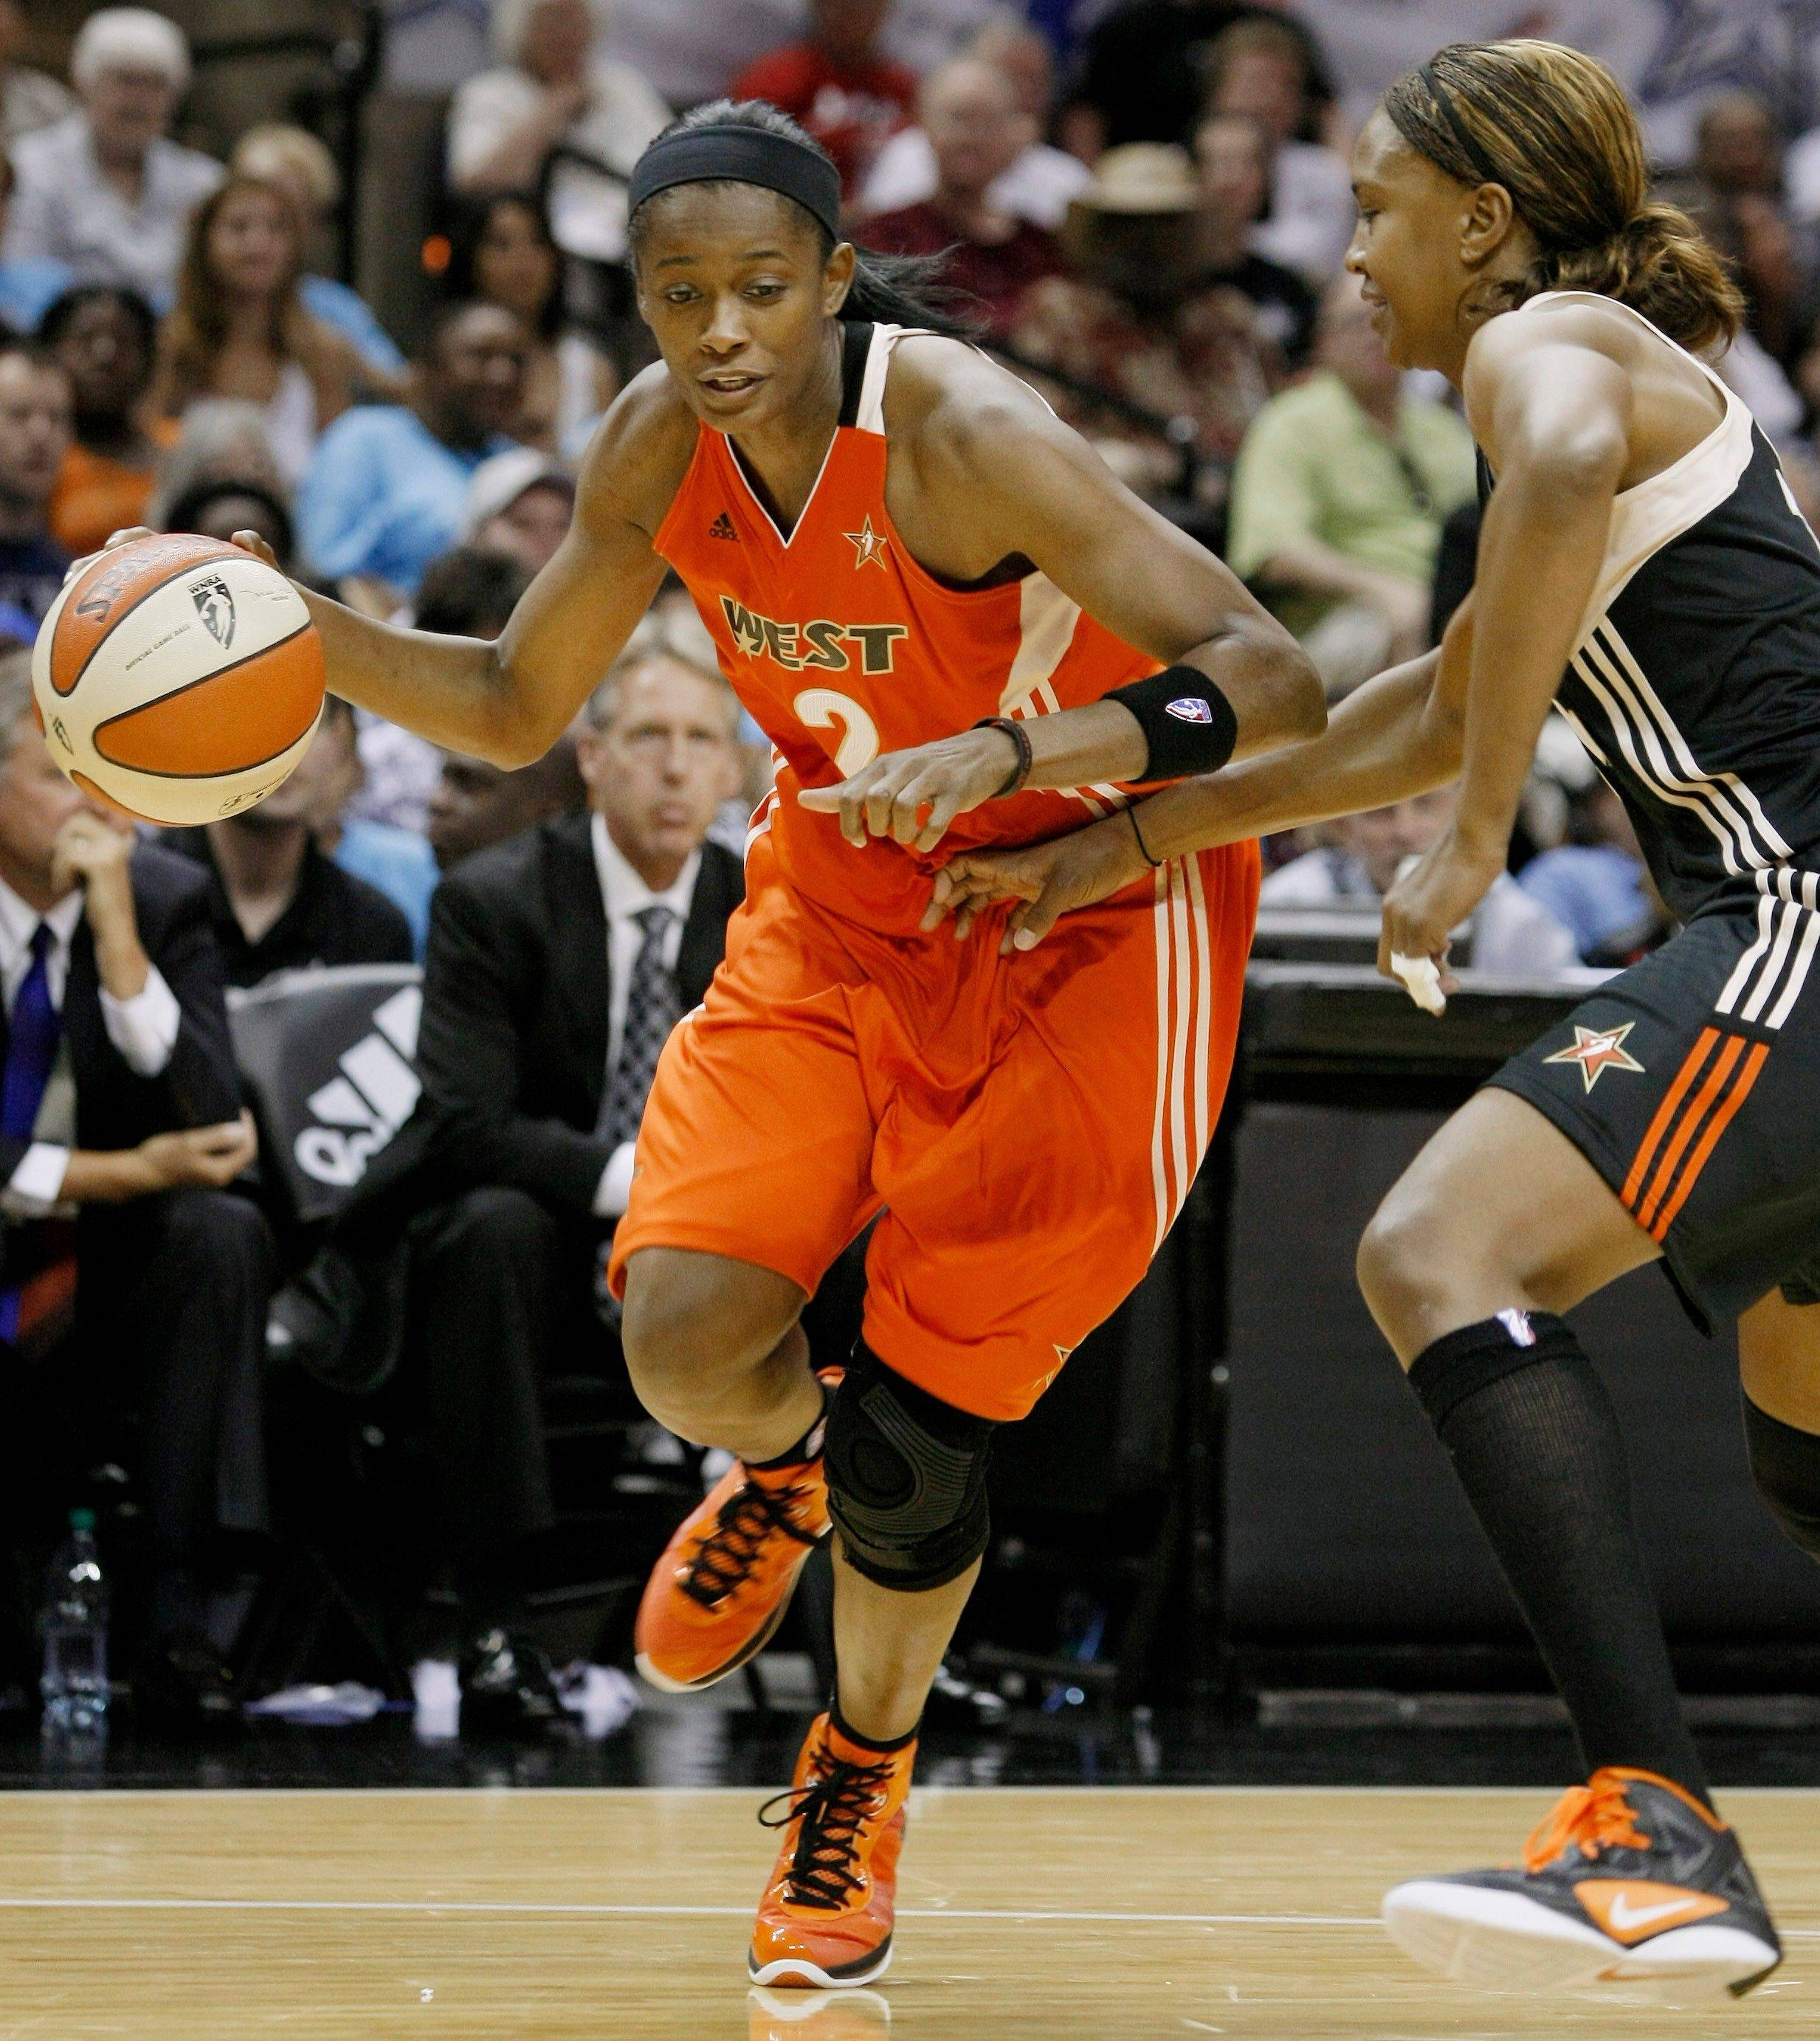 The West�s Swin Cash, left, drives around the East�s Tamika Catchings during the second half of the WNBA All-Star Game on Saturday. Cash was named MVP despite a 118-113 victory by the East.